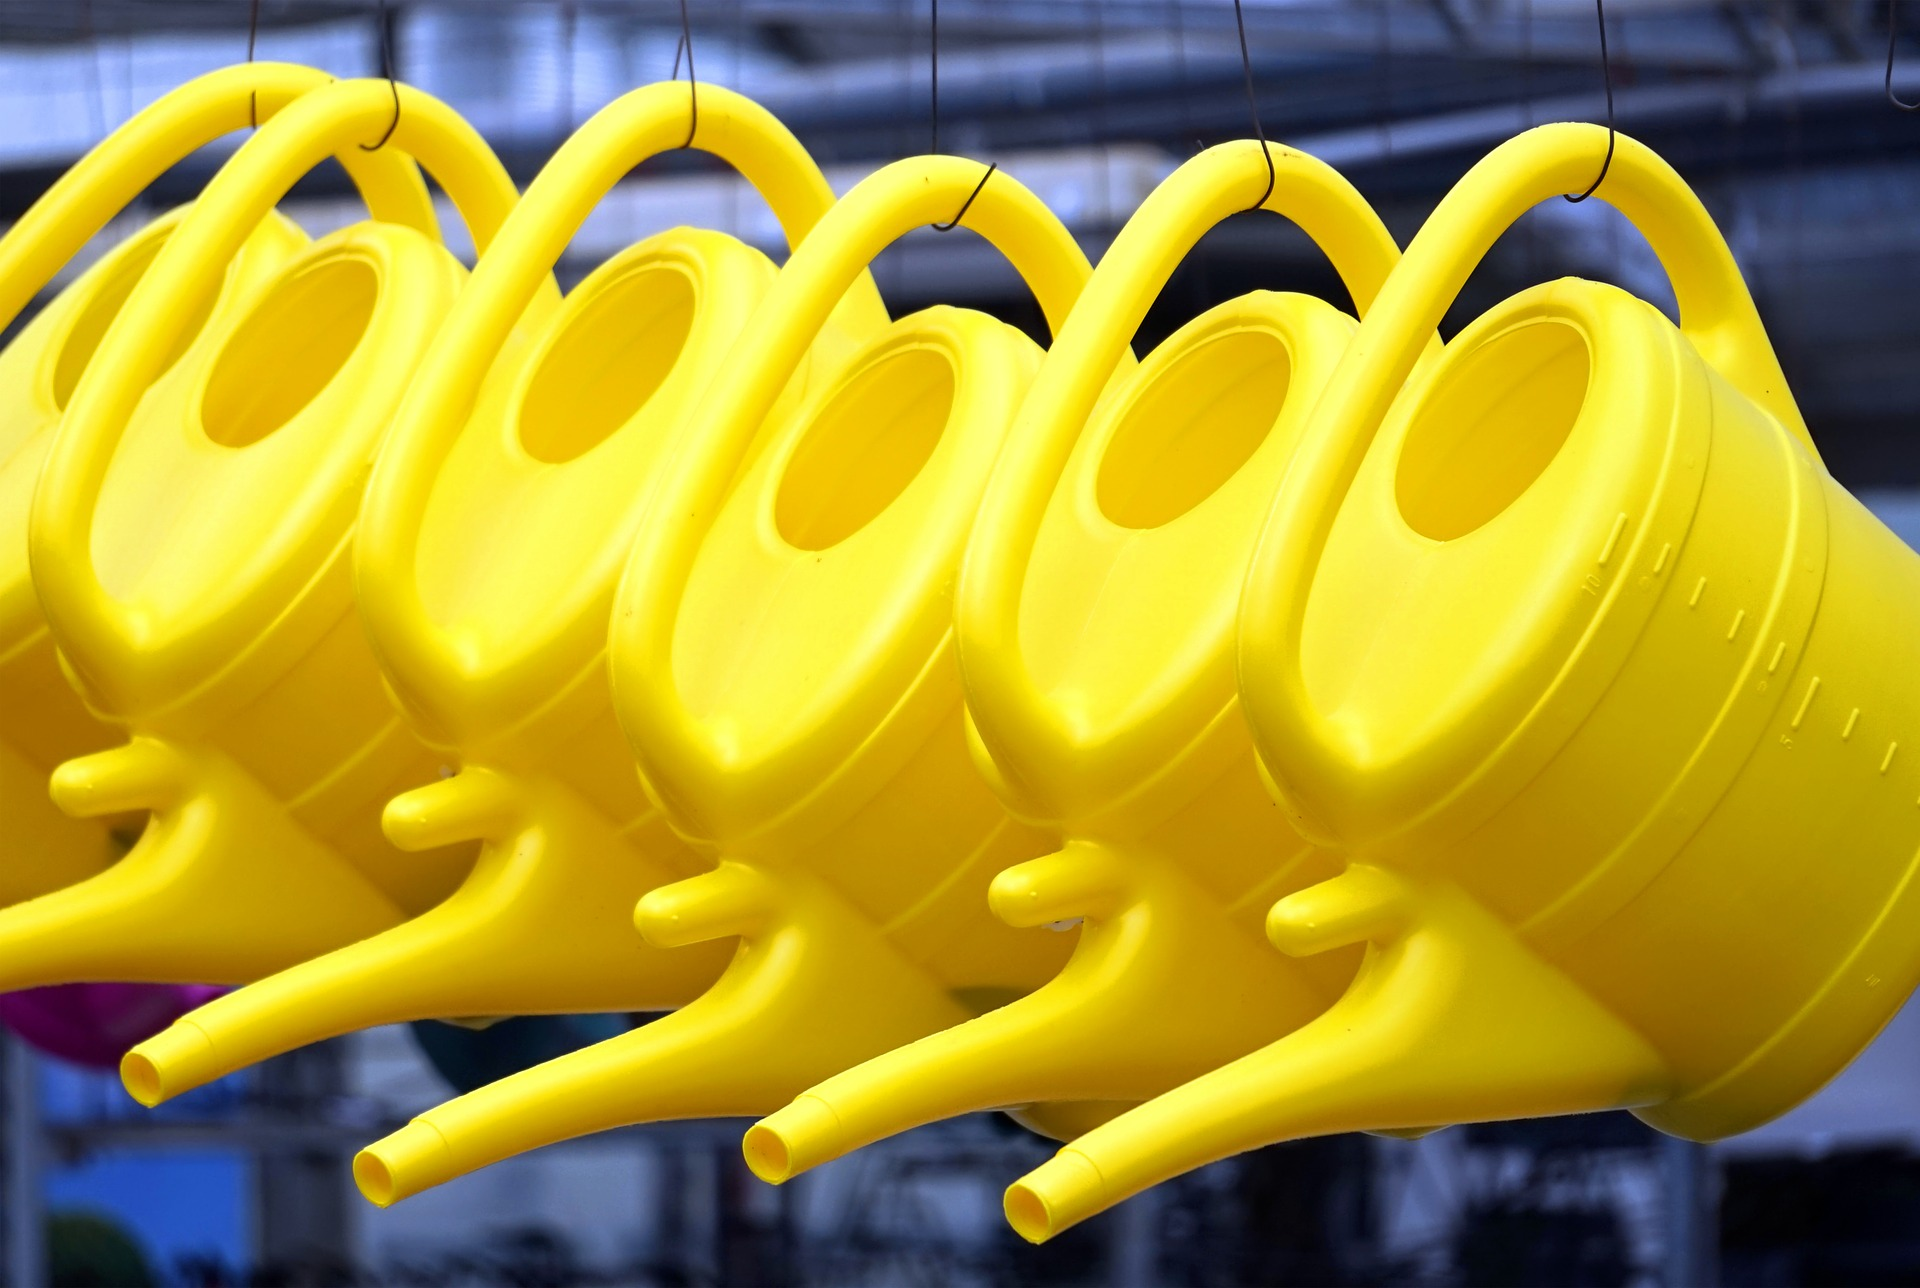 Hanged yellow watering cans